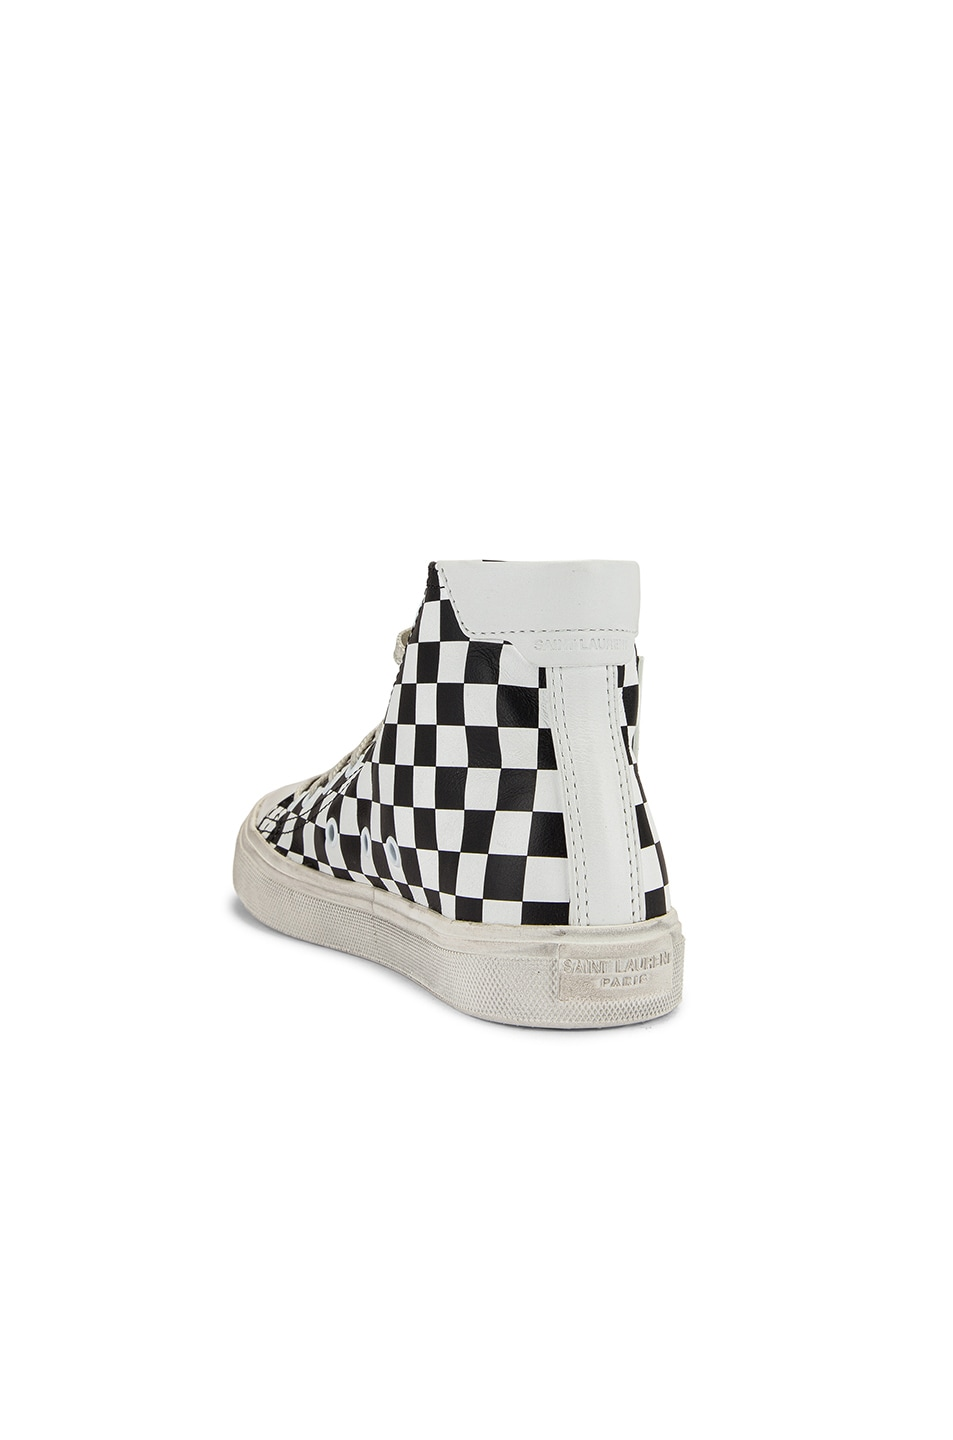 Image 3 of Saint Laurent Bedford Checkered Mid Top Sneakers in Black & White